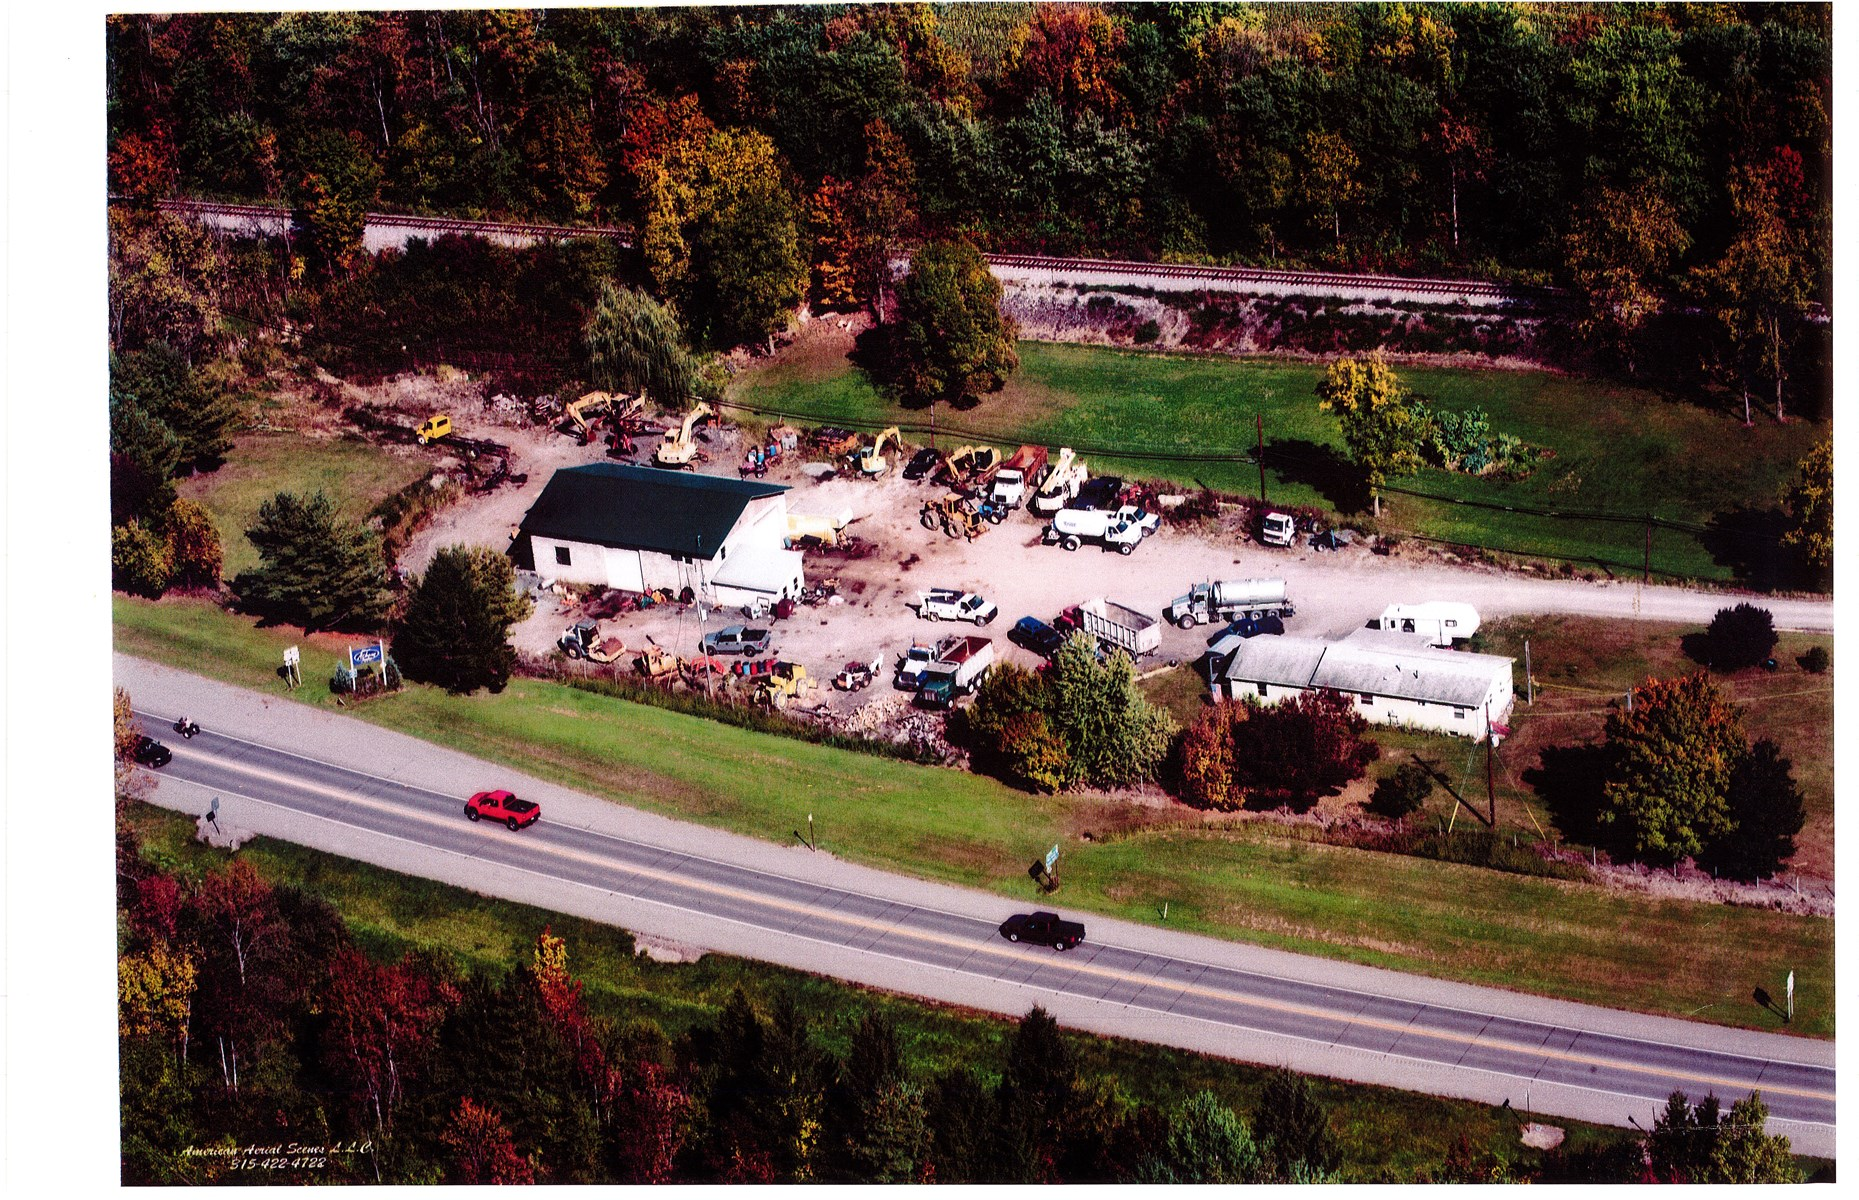 HEAVY EQUIPMENT REPAIR BUSINESS FOR SALE BRADFORD COUNTY, PA